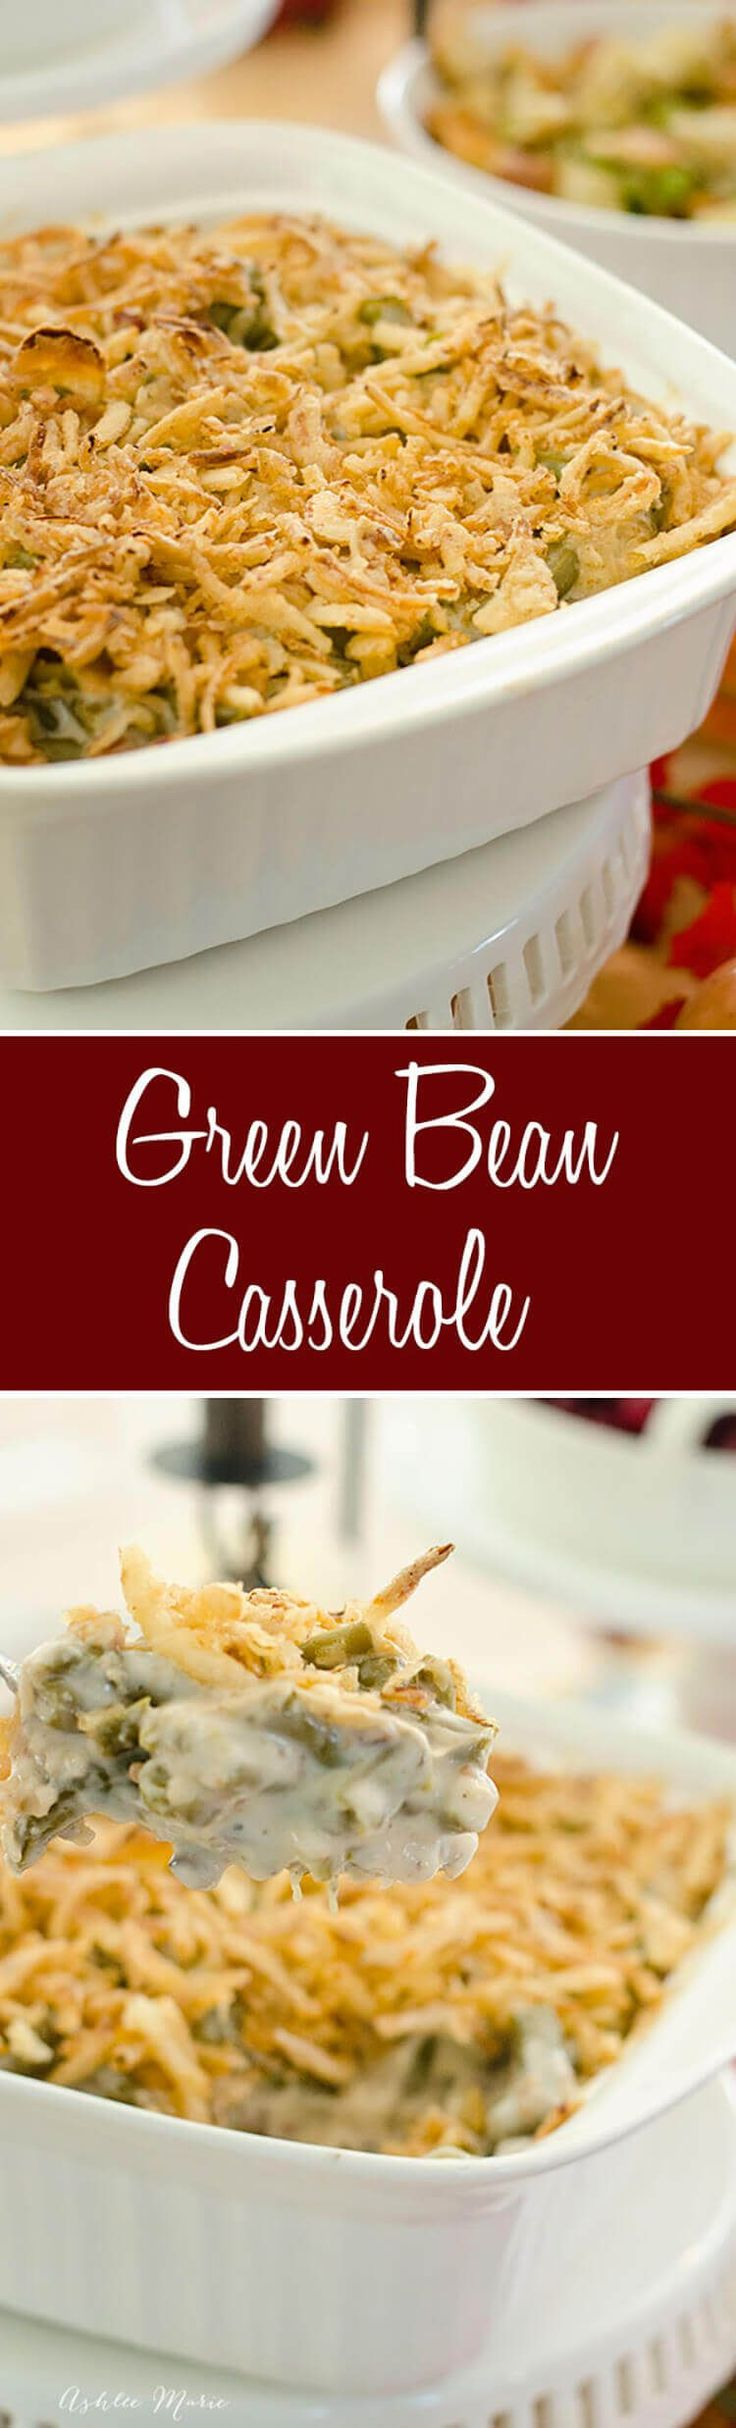 A classic and delicious thanksgiving dish, this green bean casserole is oh-so-delicious via @ashleemariecakes